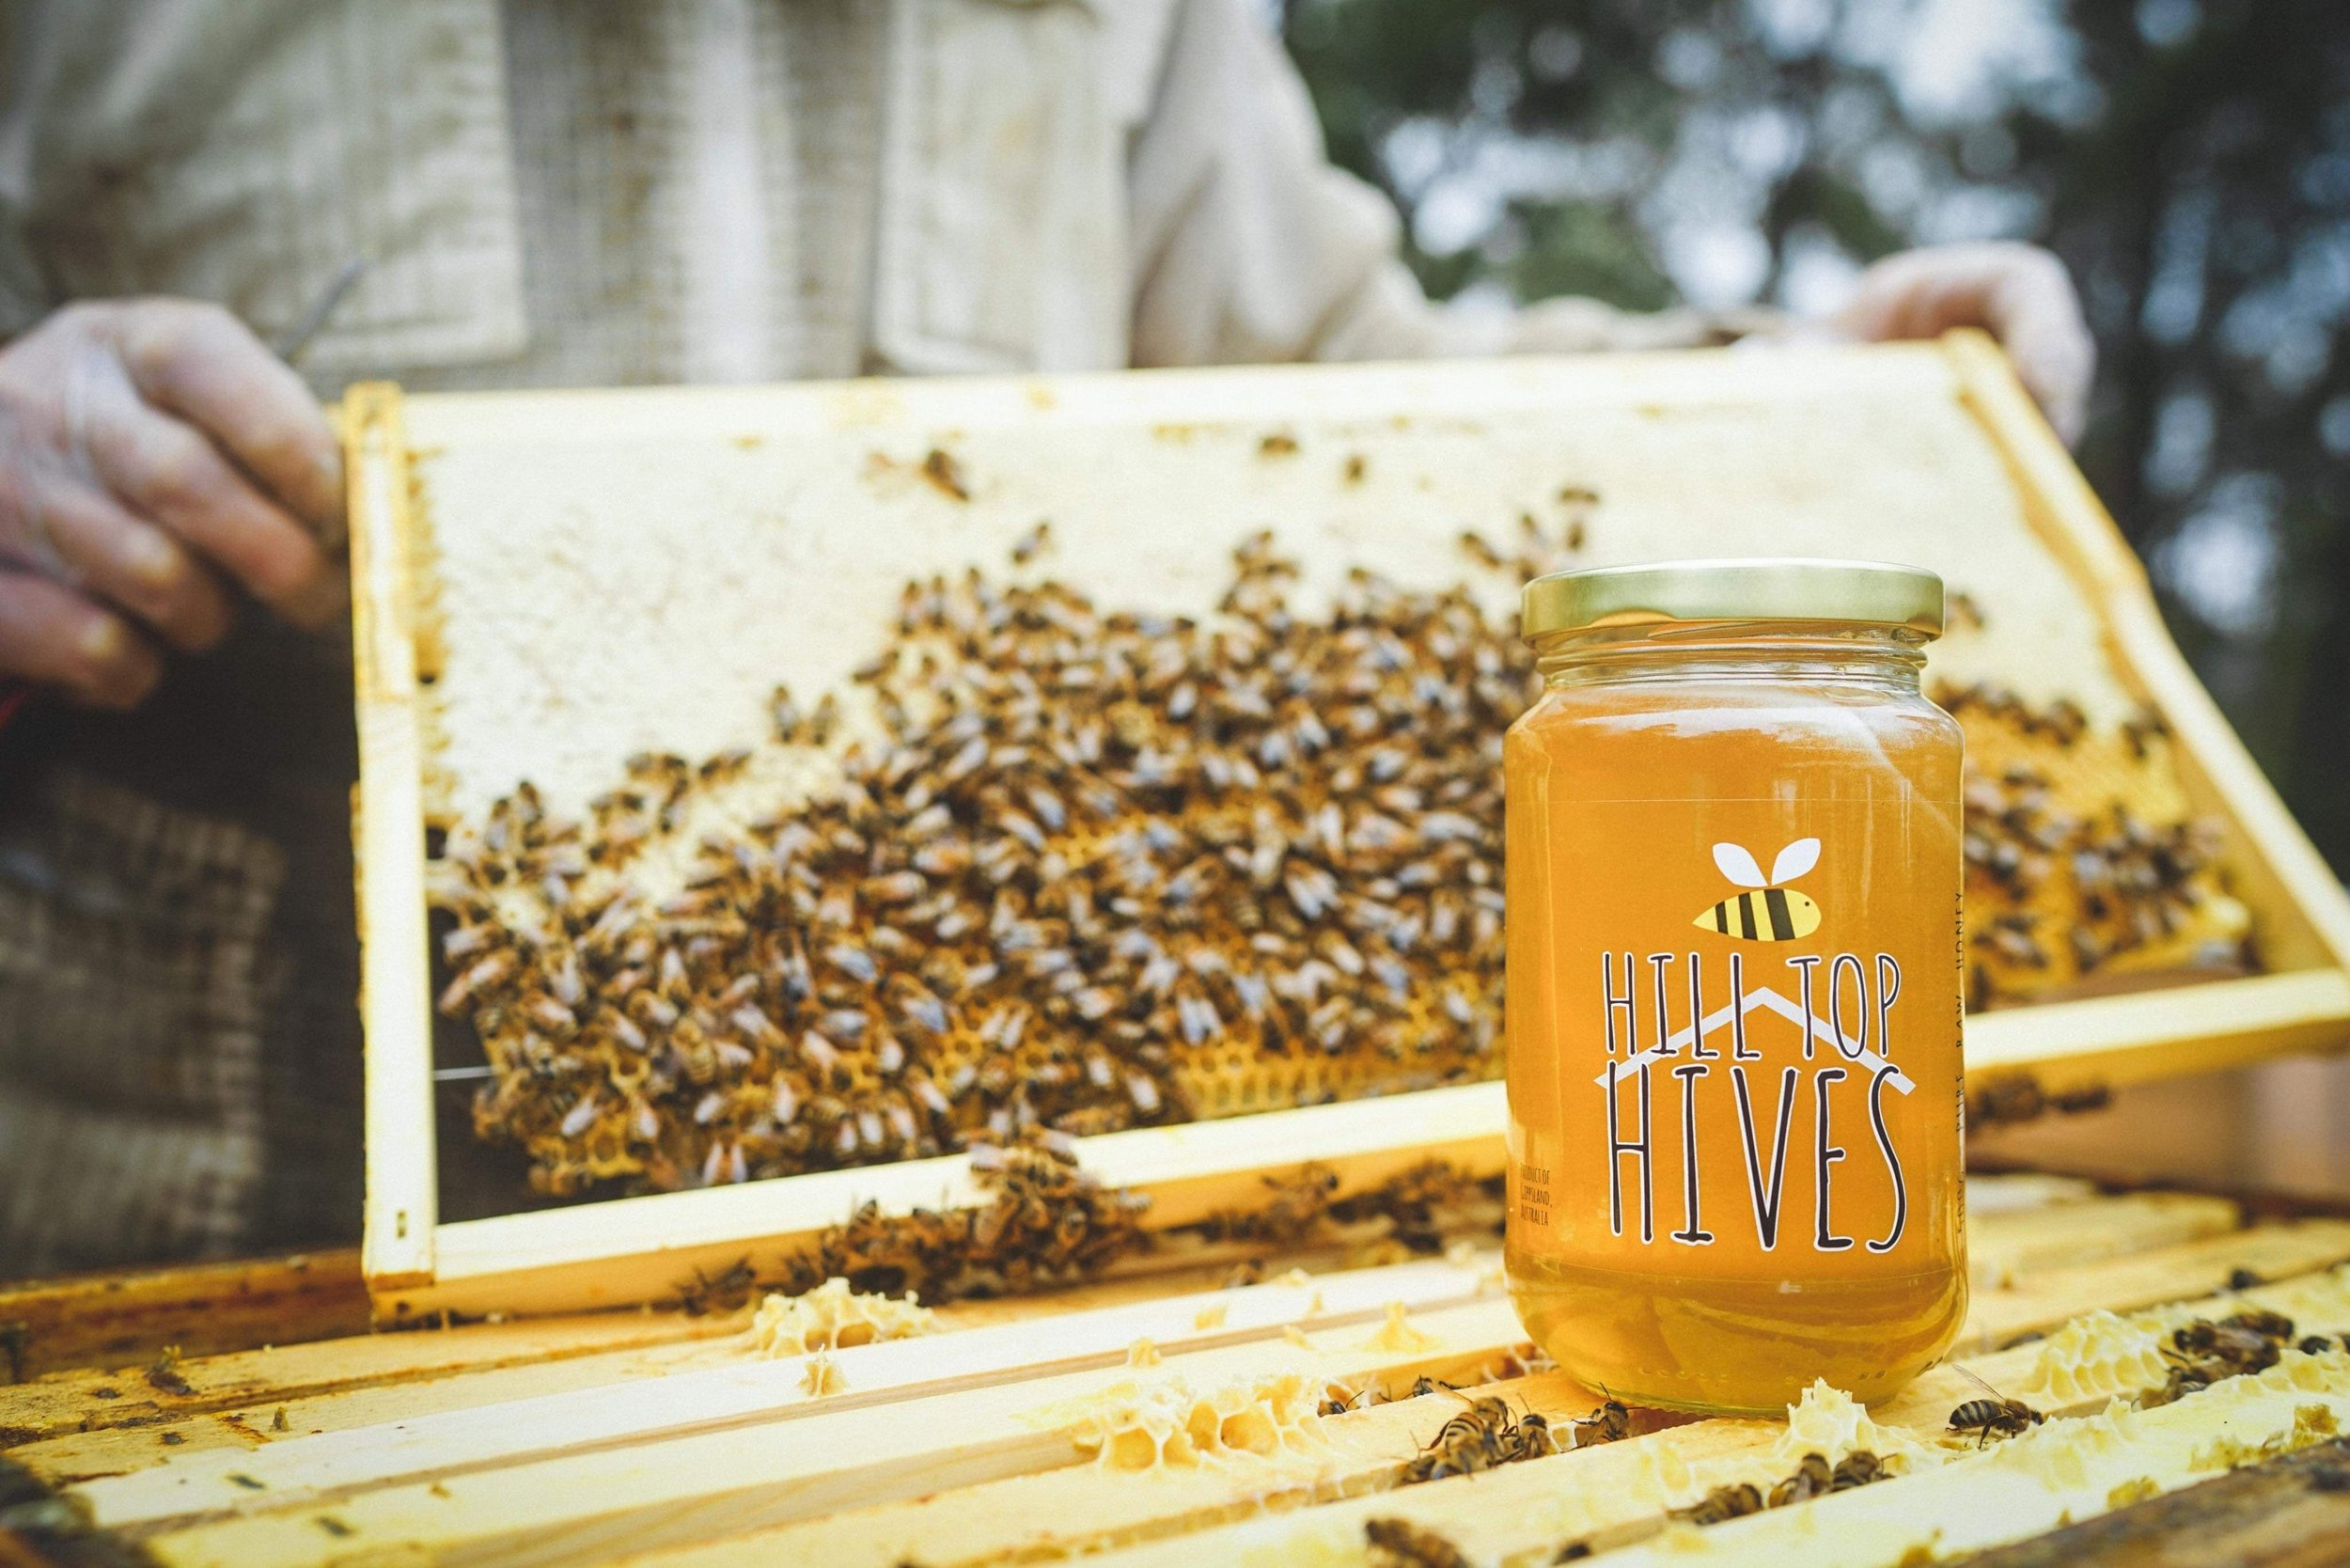 Welcome to Hill Top Hives, producers of pure, raw honey and beeswax products, located in the stunning South Gippsland countryside in Victoria, Australia. -